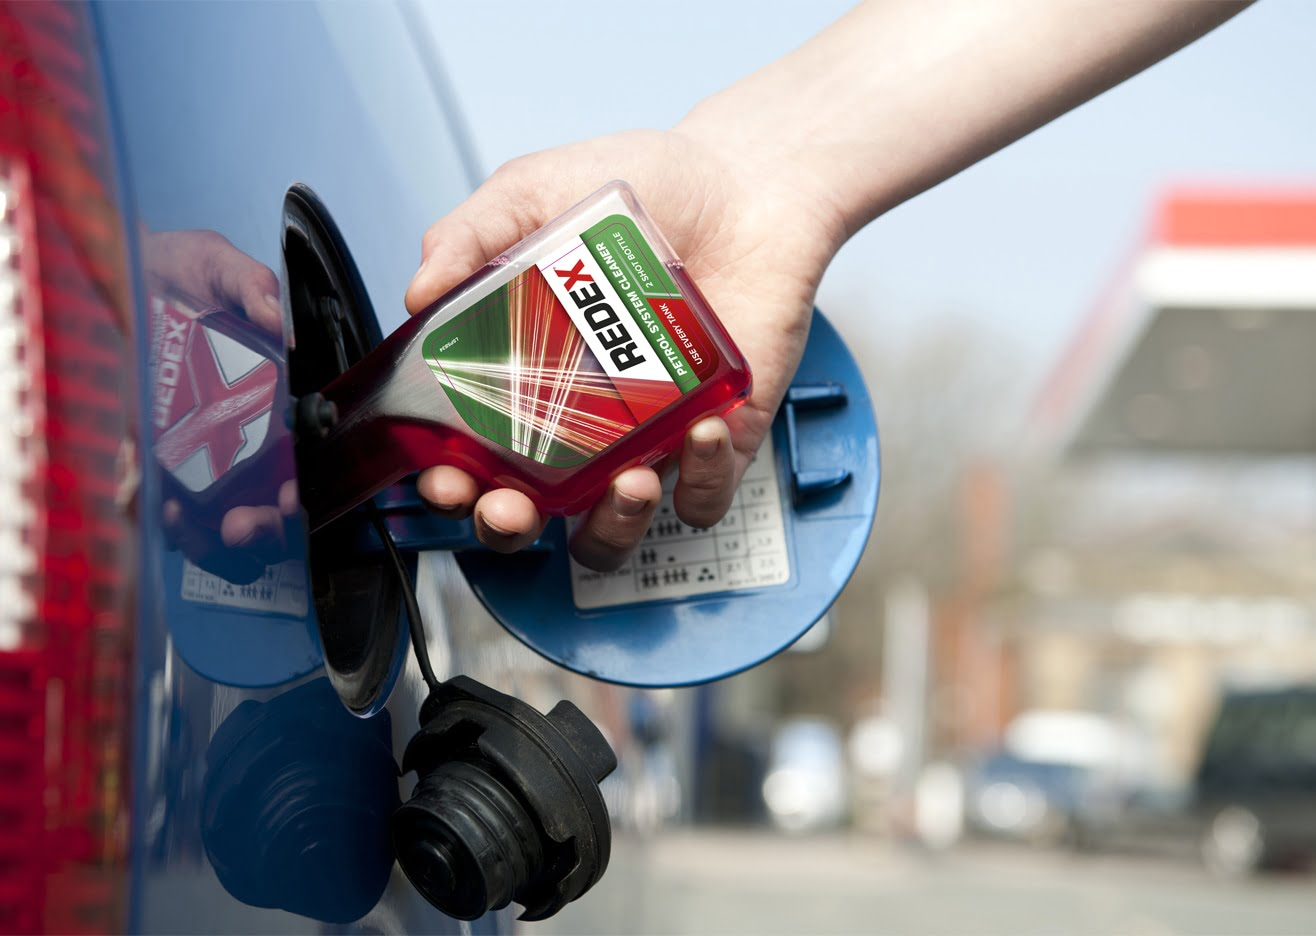 Redex in use petrol station